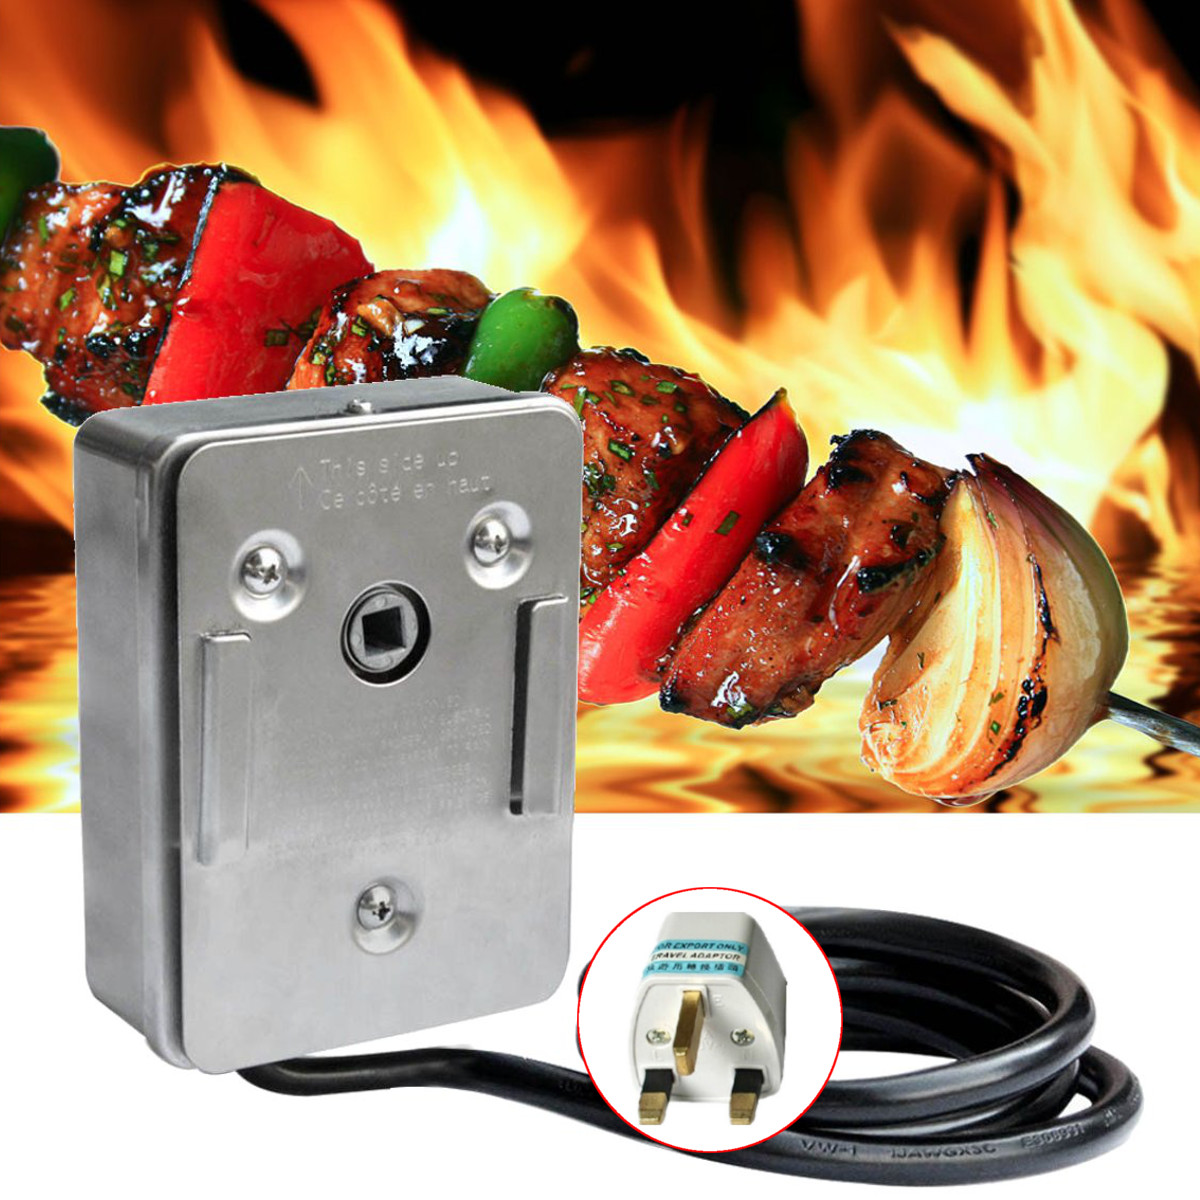 220V Onlyfire Universal Grill Electric Replacement BBQ Grill Heavy Duty Stainless Steel Rotisserie Motor Electric Motor extra large stainless steel camping bbq grill 50 5 x 44 5 x 43 cm